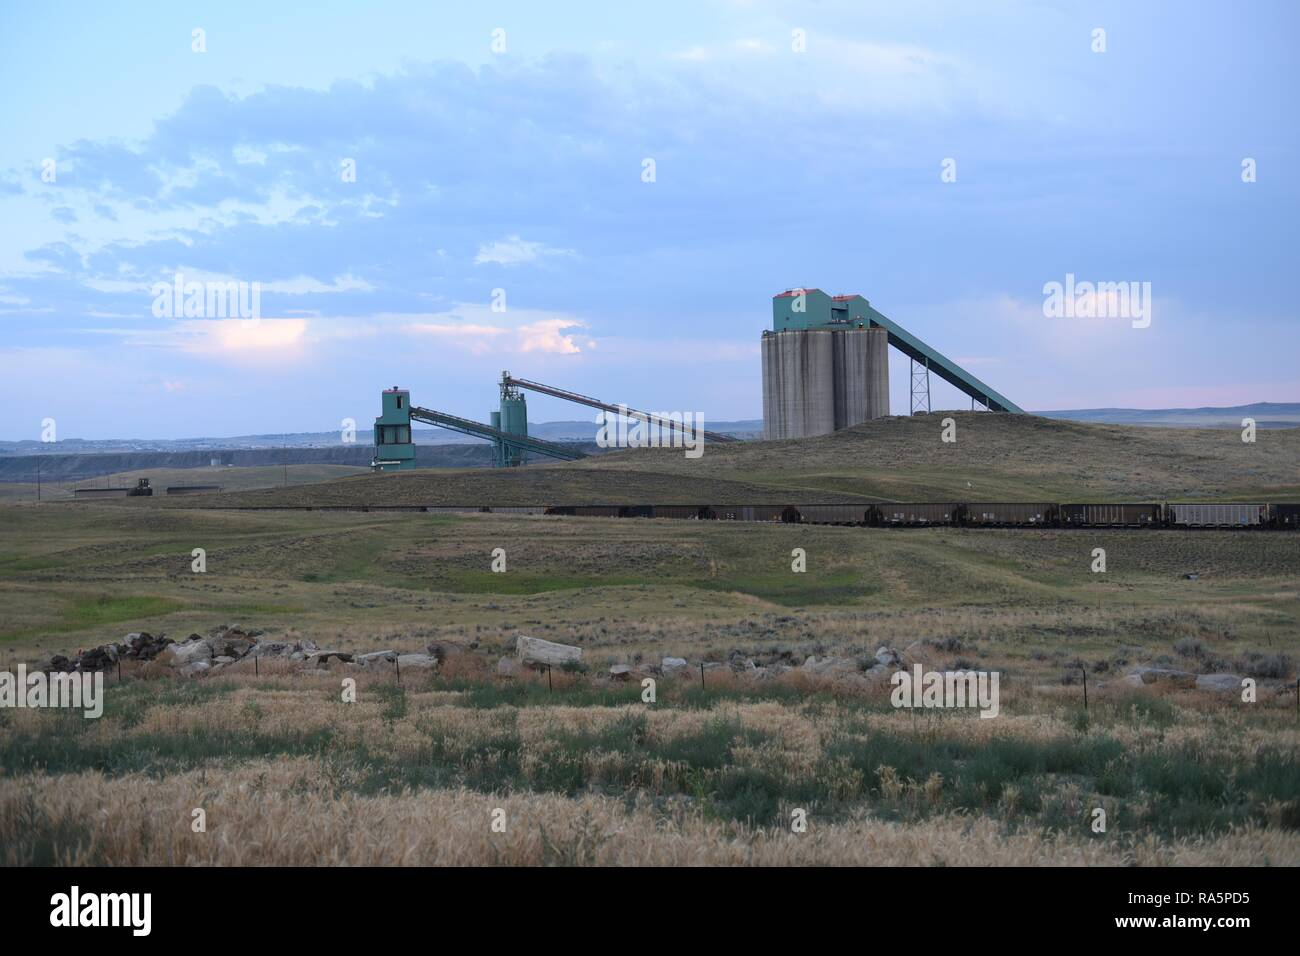 Coal train, coal mining silos, and processing operations in the Powder River Basin of Wyoming, USA. Stock Photo